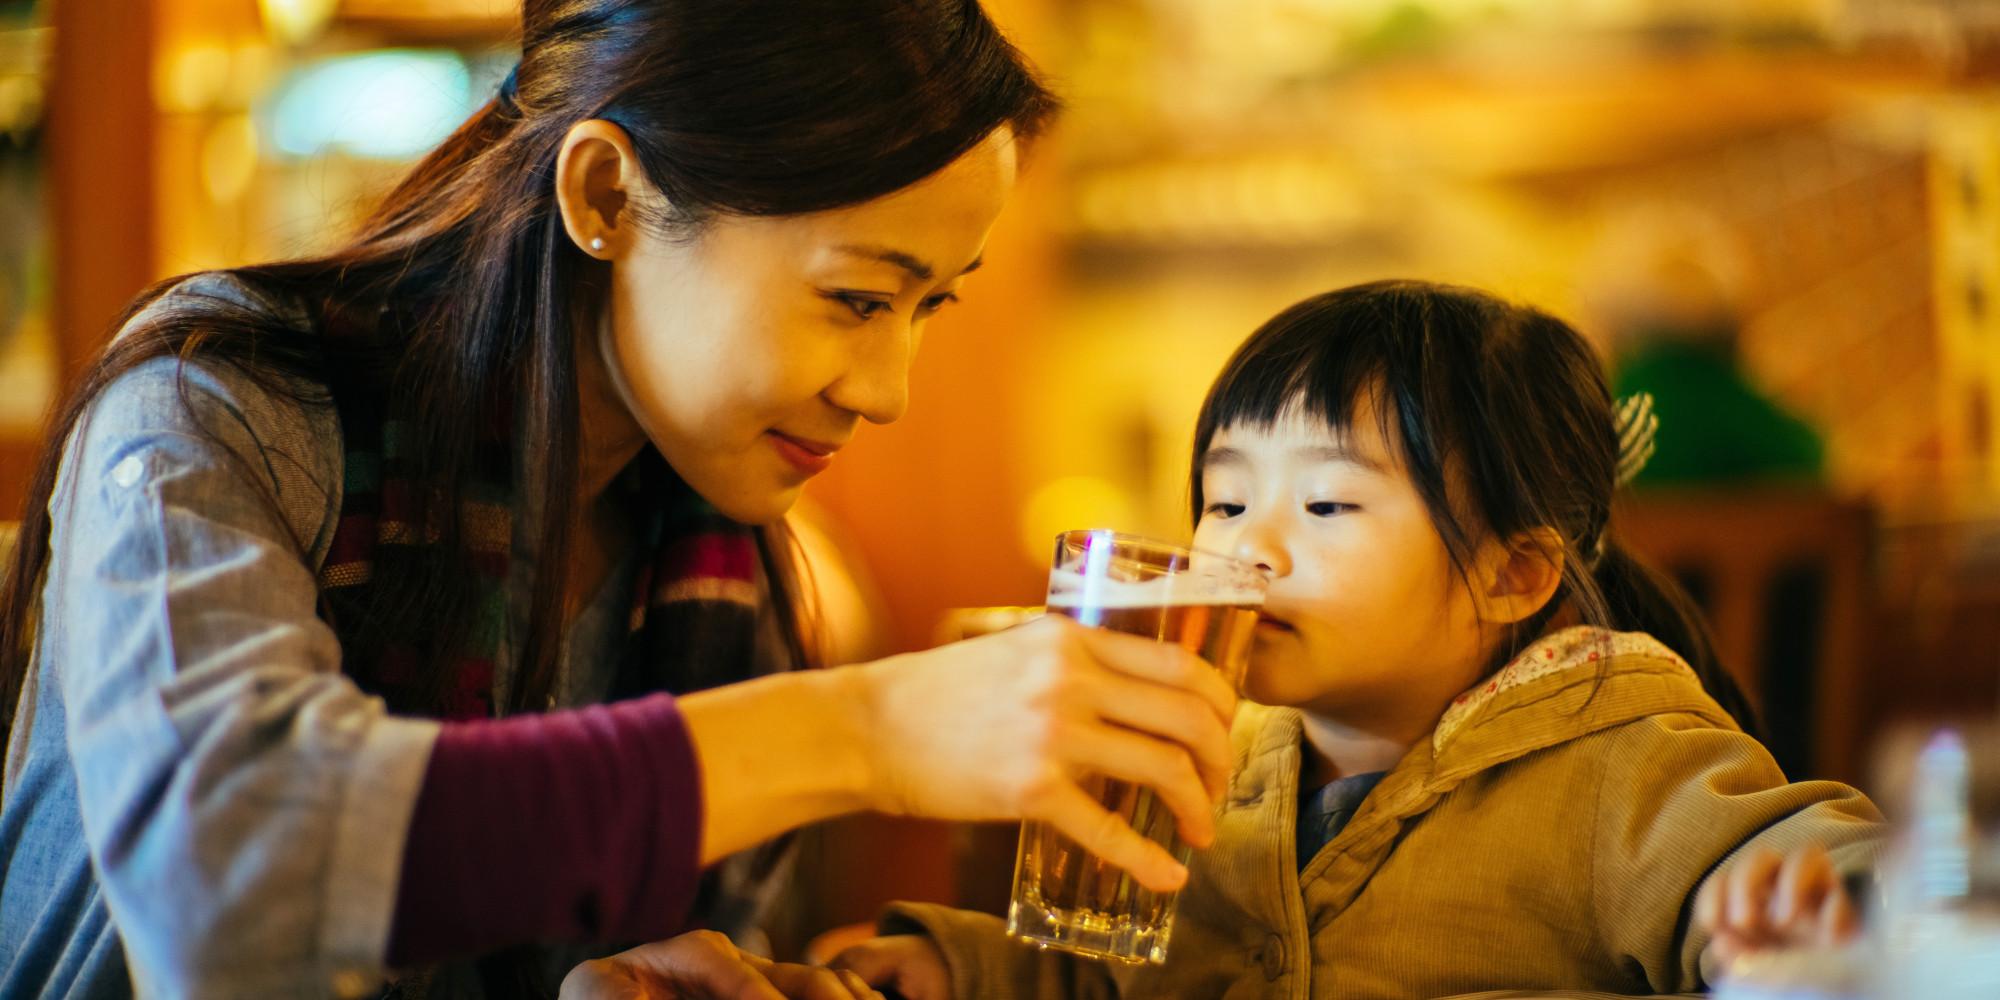 States That Kids Can Drink With Parents